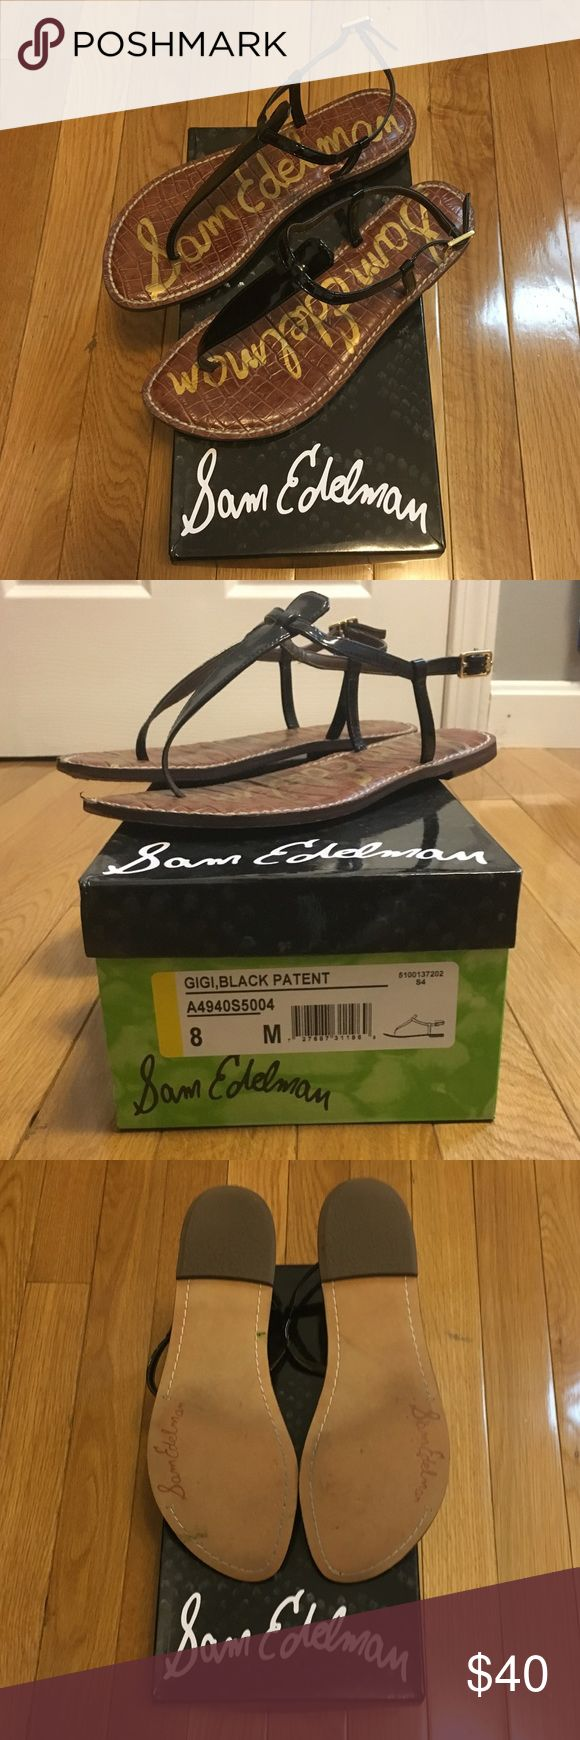 Sam Edelman Gigi Black Patent Sandal, Size 8 Great sandals that I've only worn a few times, in great condition. Black patent leather. Comes with box. Sorry no trades, only looking to sell. Sam Edelman Shoes Sandals